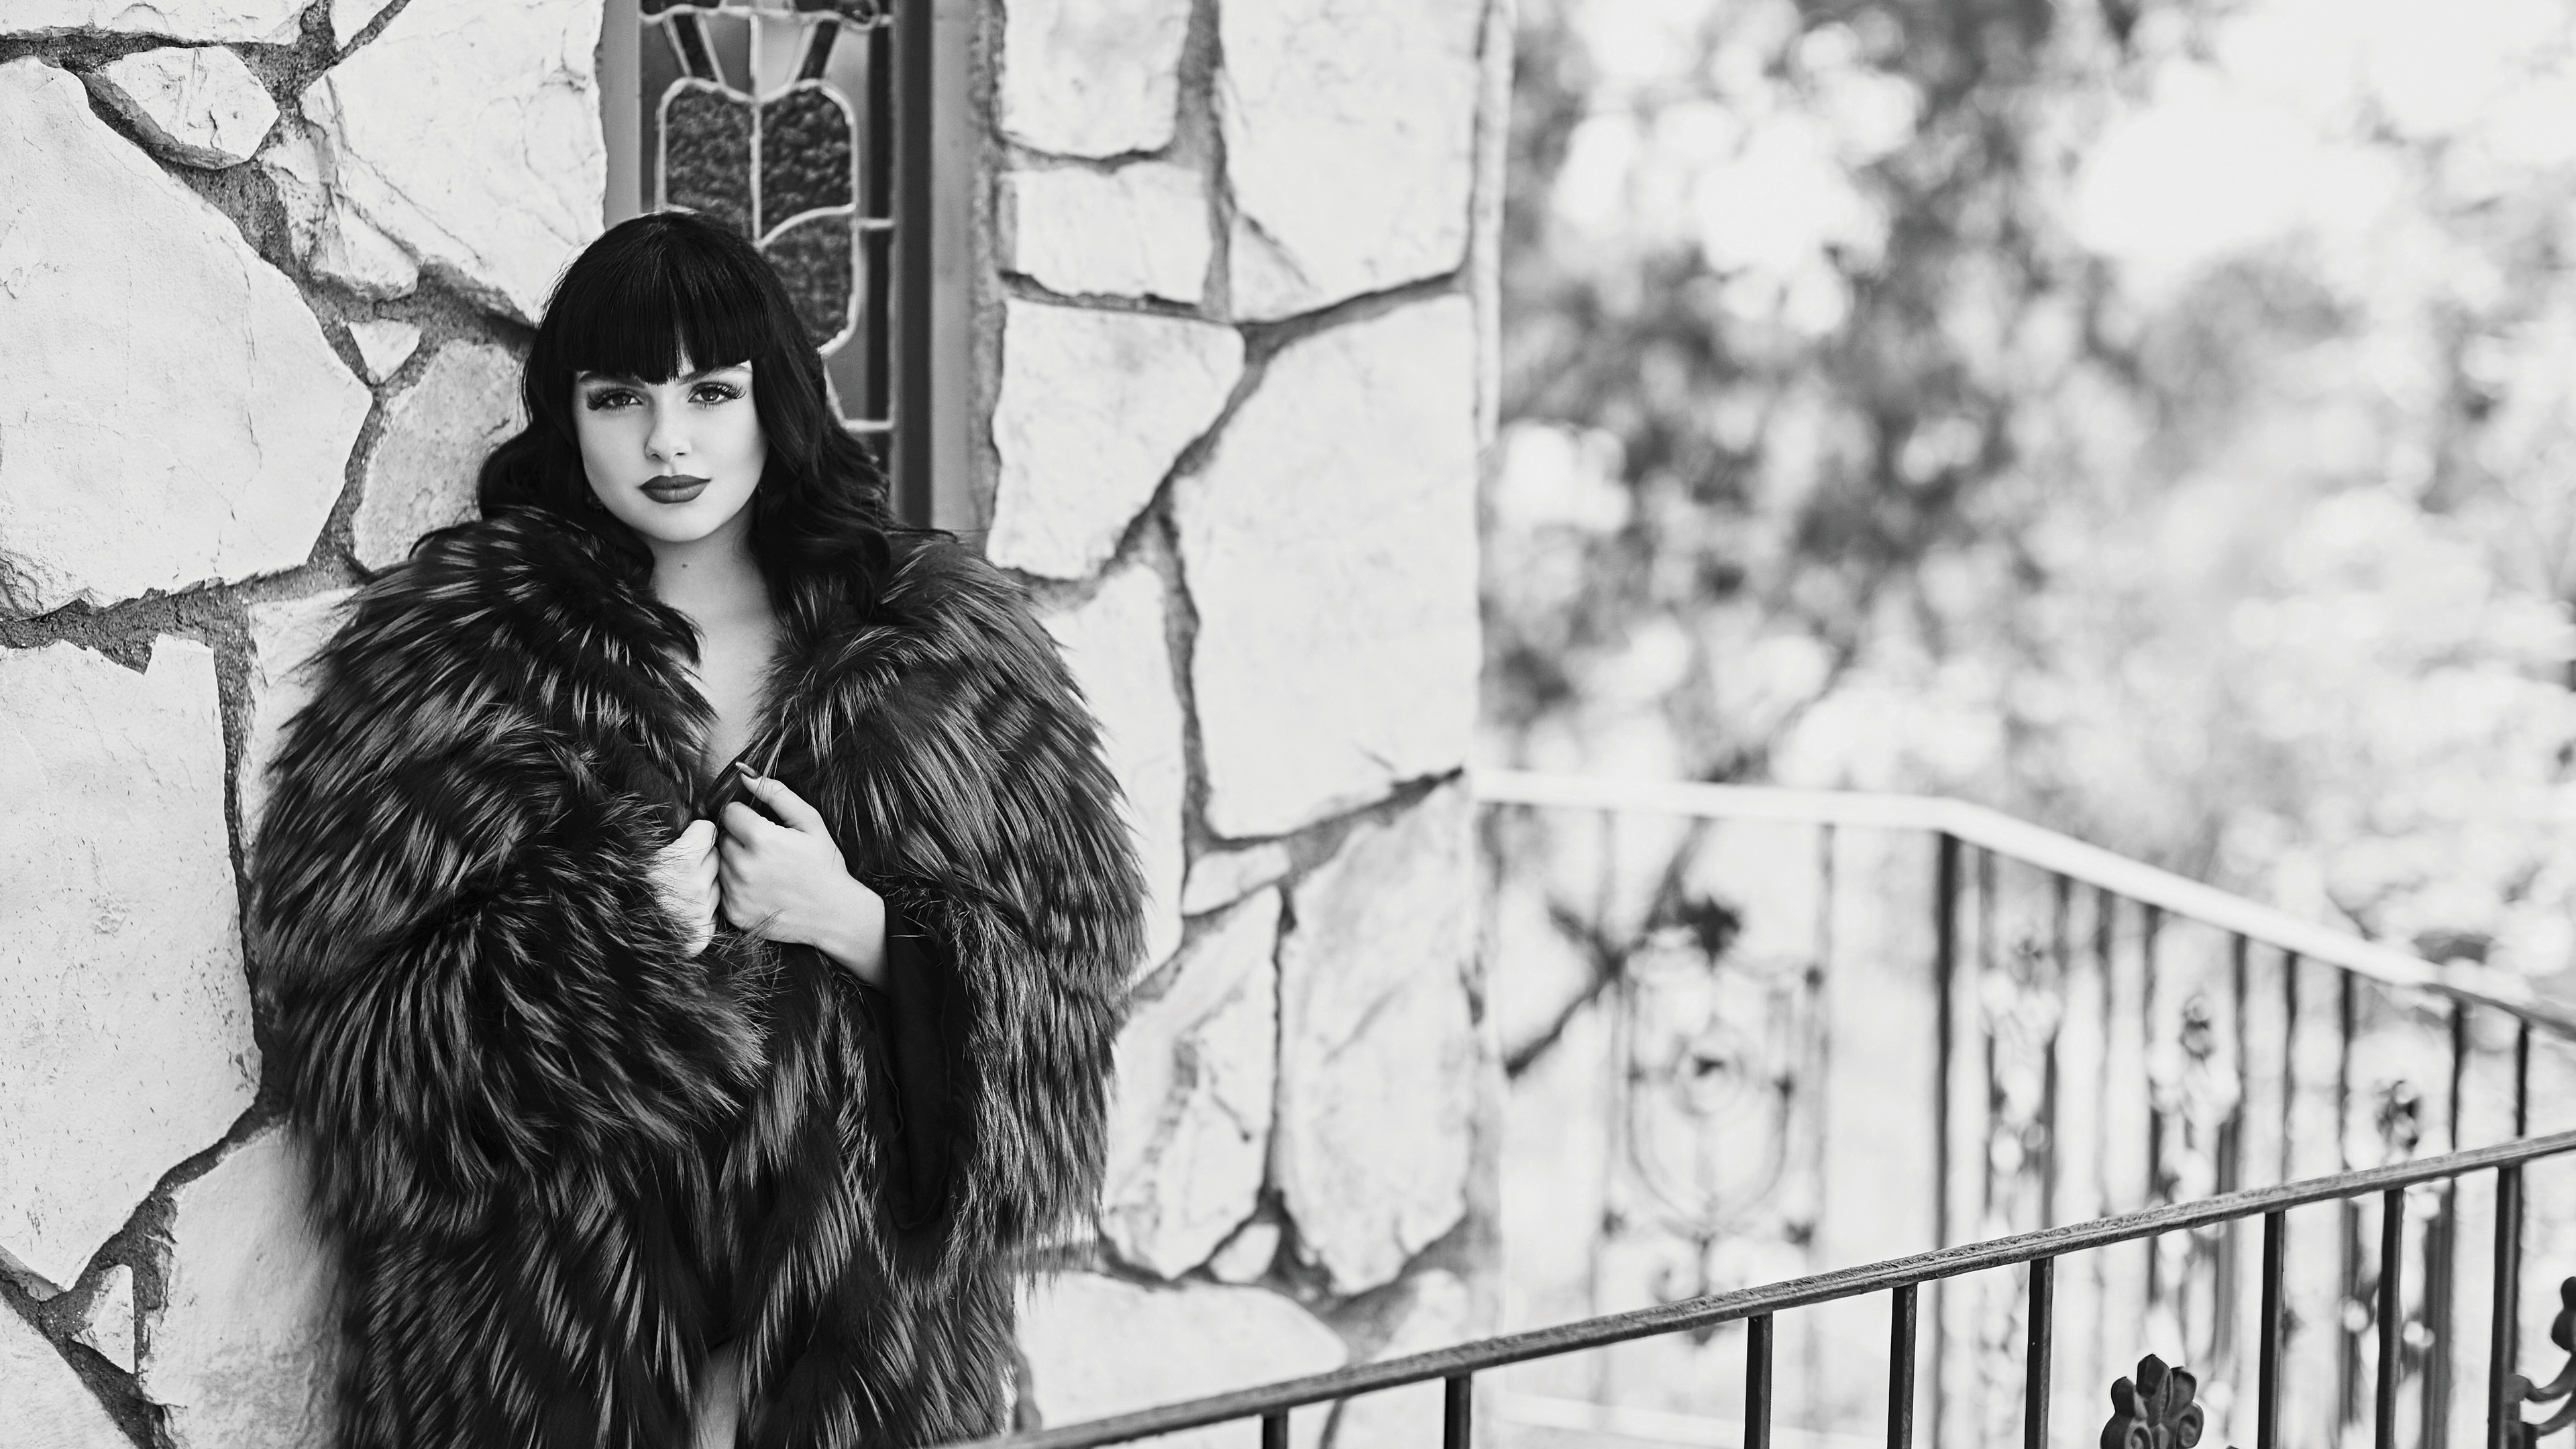 ariel winter monochrome 1536943045 - Ariel Winter Monochrome - monochrome wallpapers, hd-wallpapers, girls wallpapers, celebrities wallpapers, black and white wallpapers, ariel winter wallpapers, 5k wallpapers, 4k-wallpapers